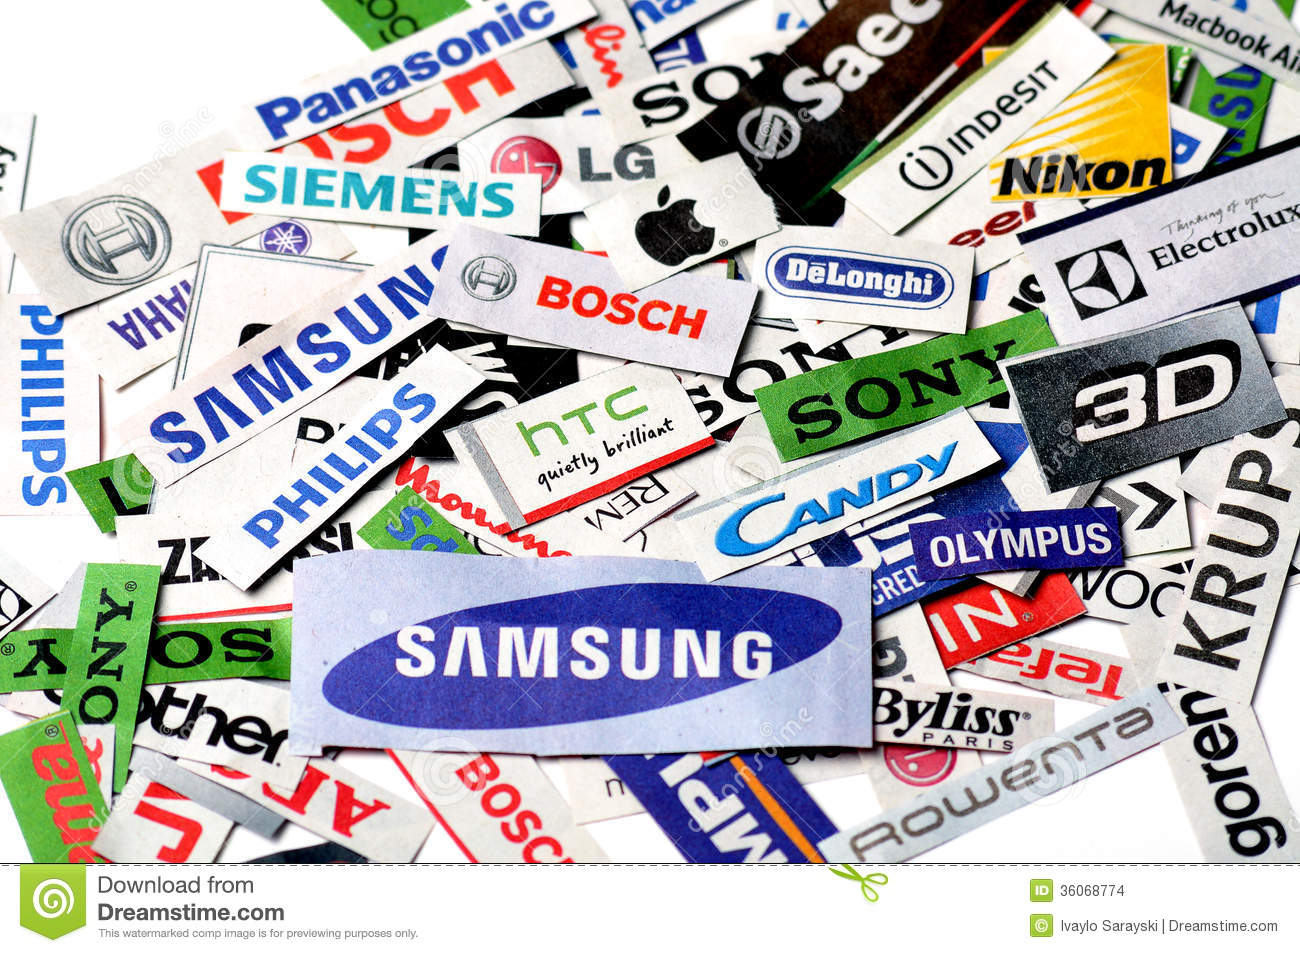 Logos Brands And Logotypes: Technology Brands Editorial Stock Image. Image Of Mixed